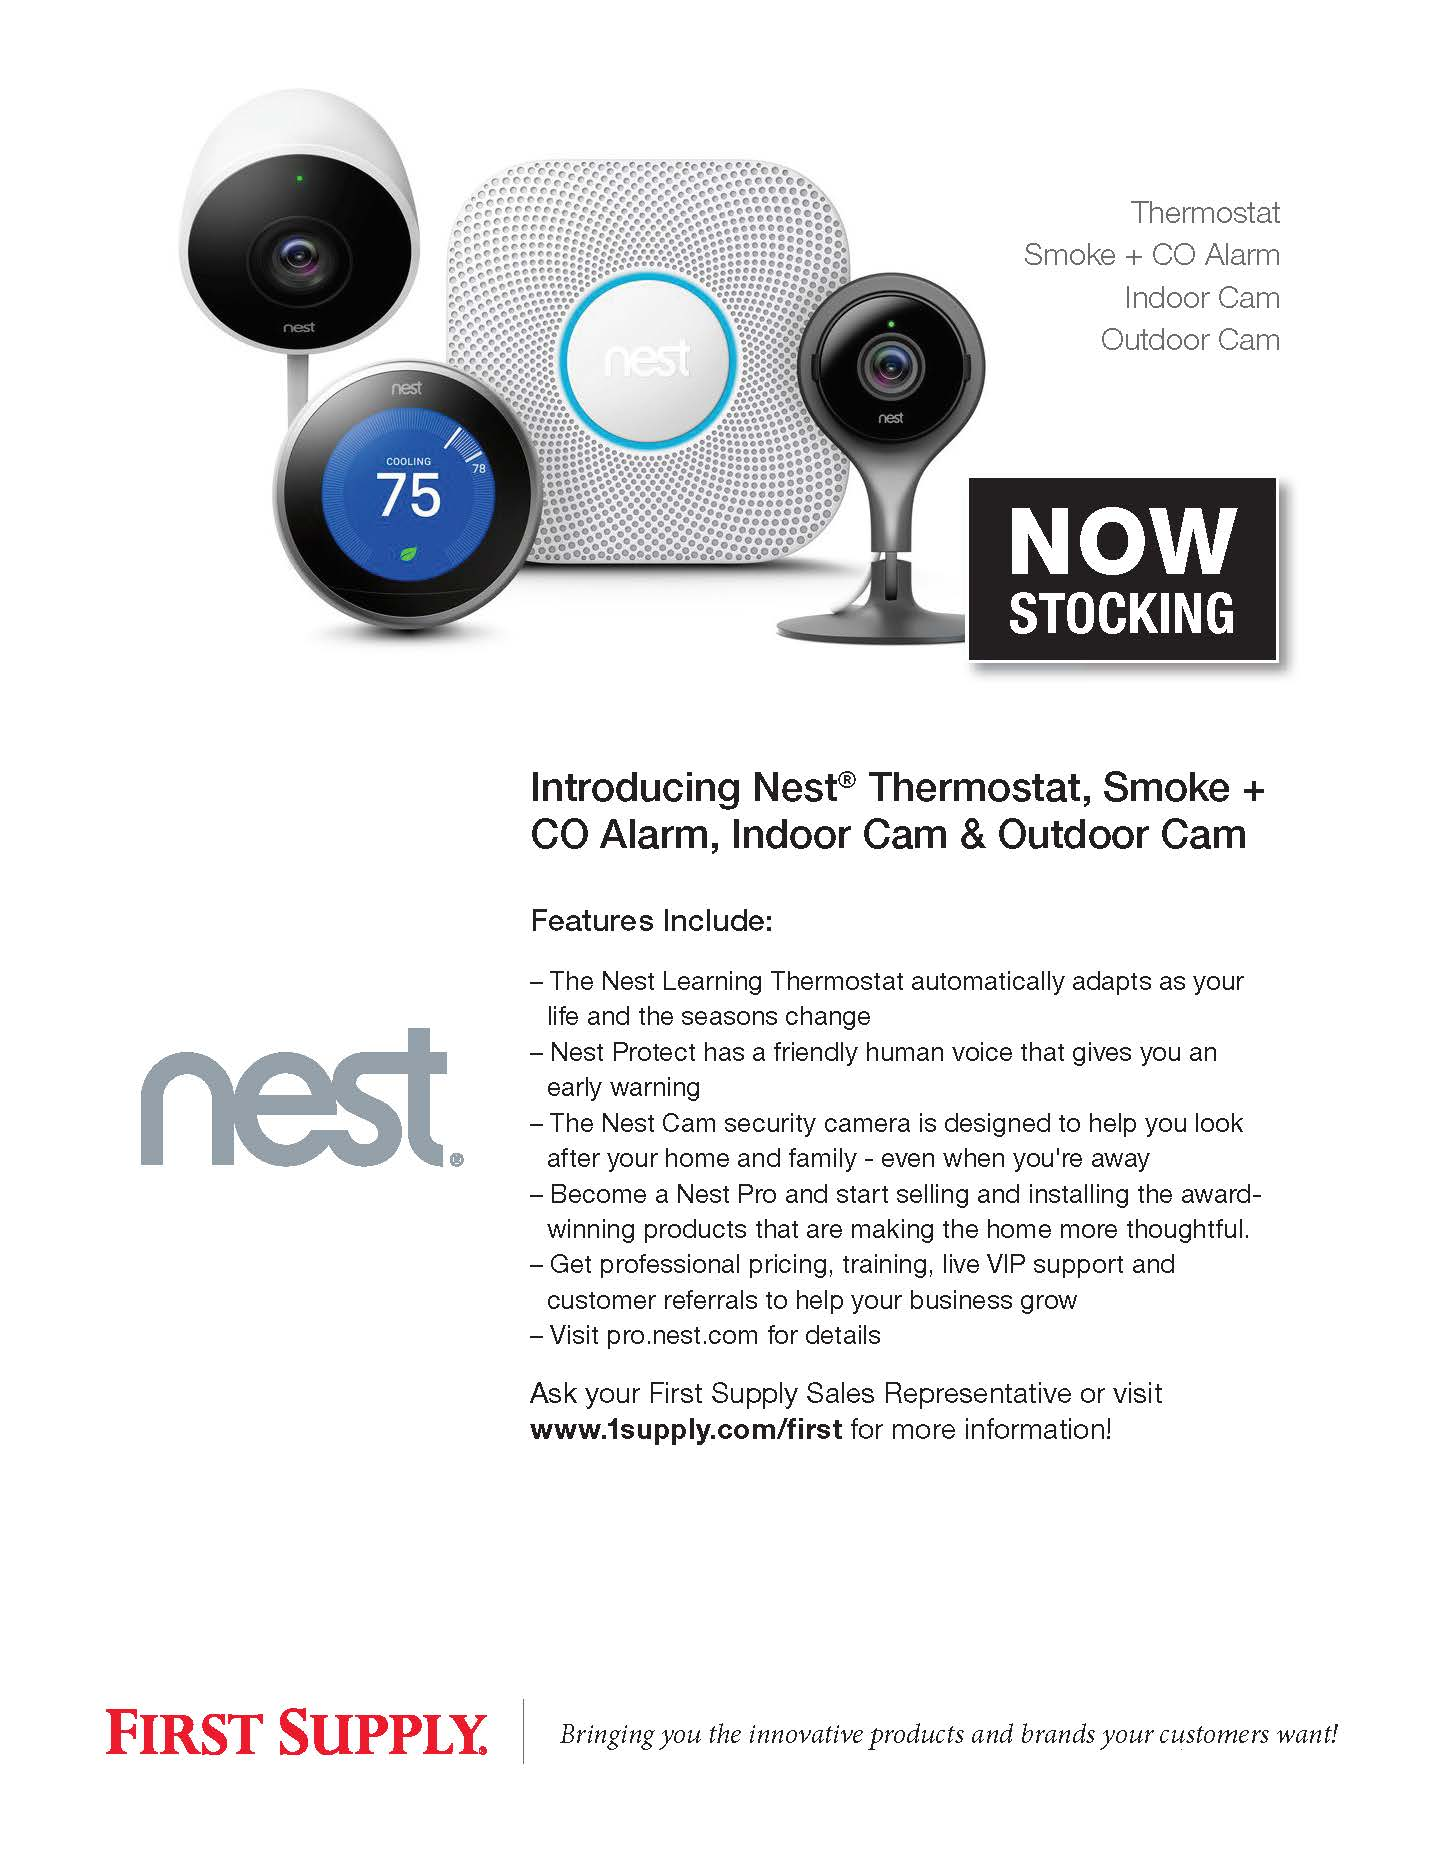 Nest Thermostat, CO Alarm, Indoor & Outdoor Camera [ download pdf ]